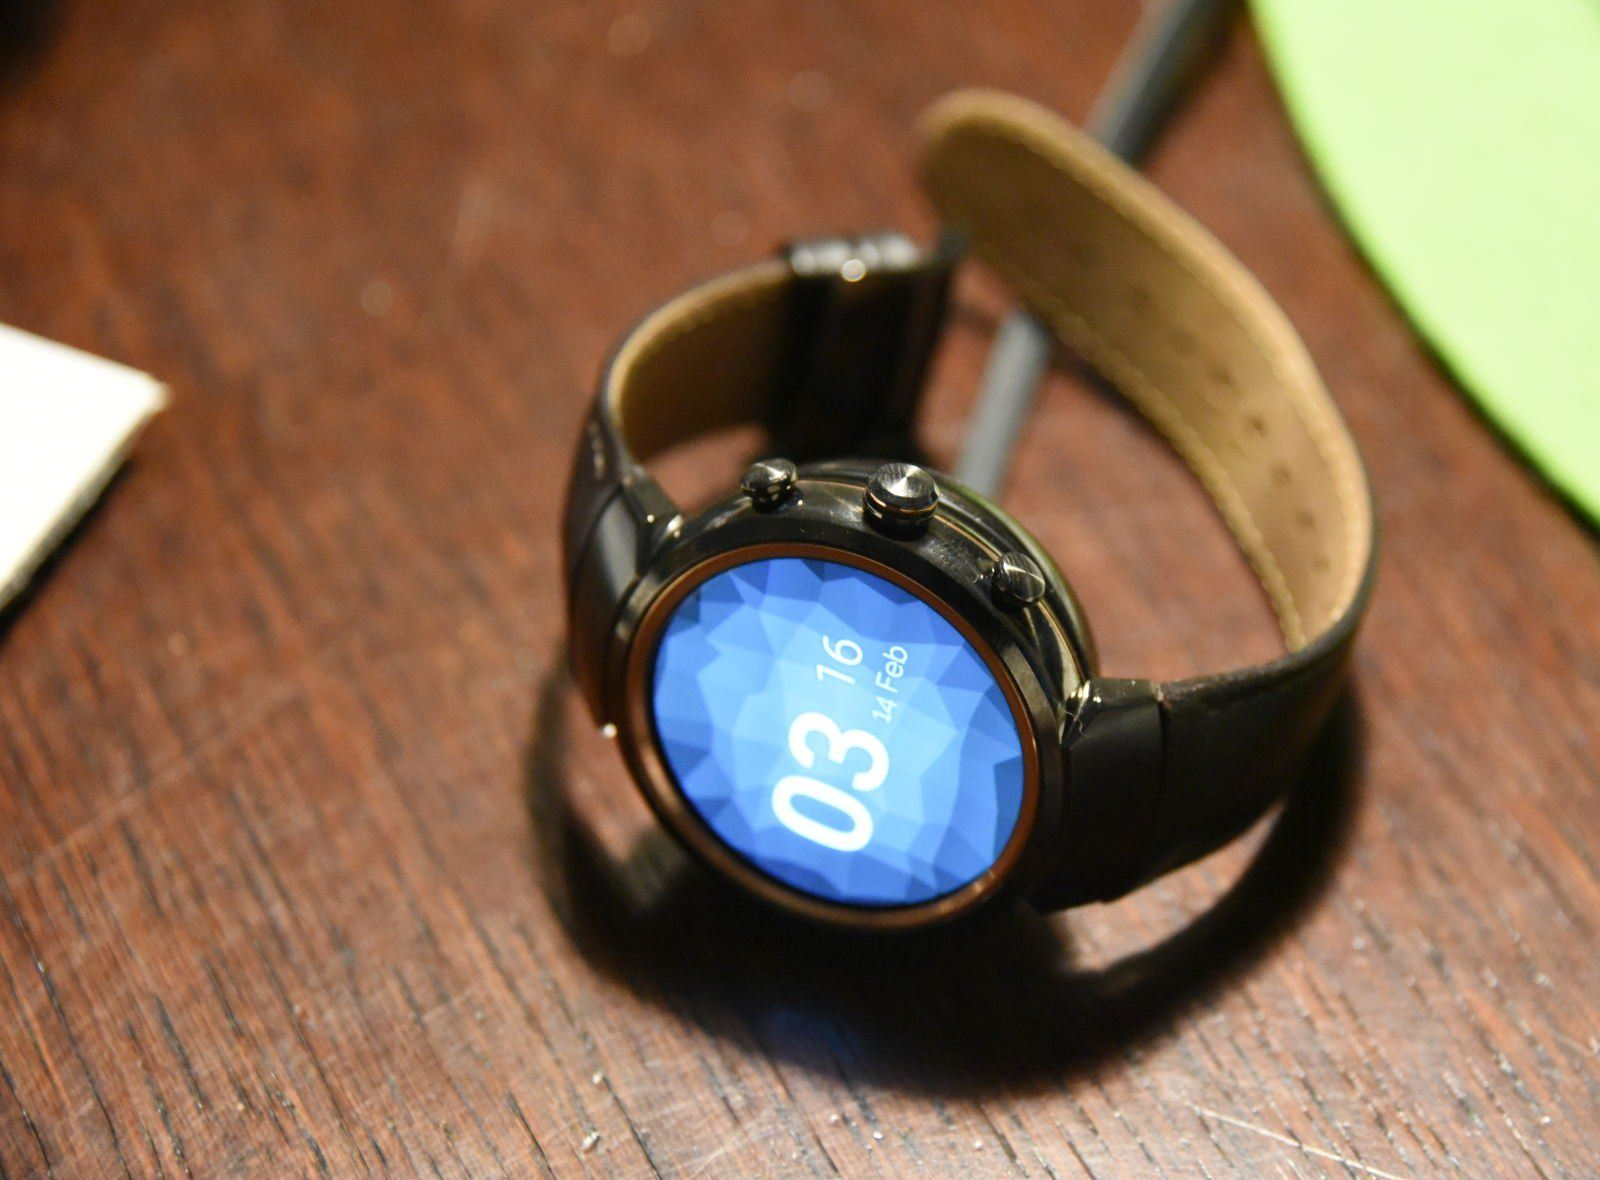 postmarketOS is finally coming to wearables